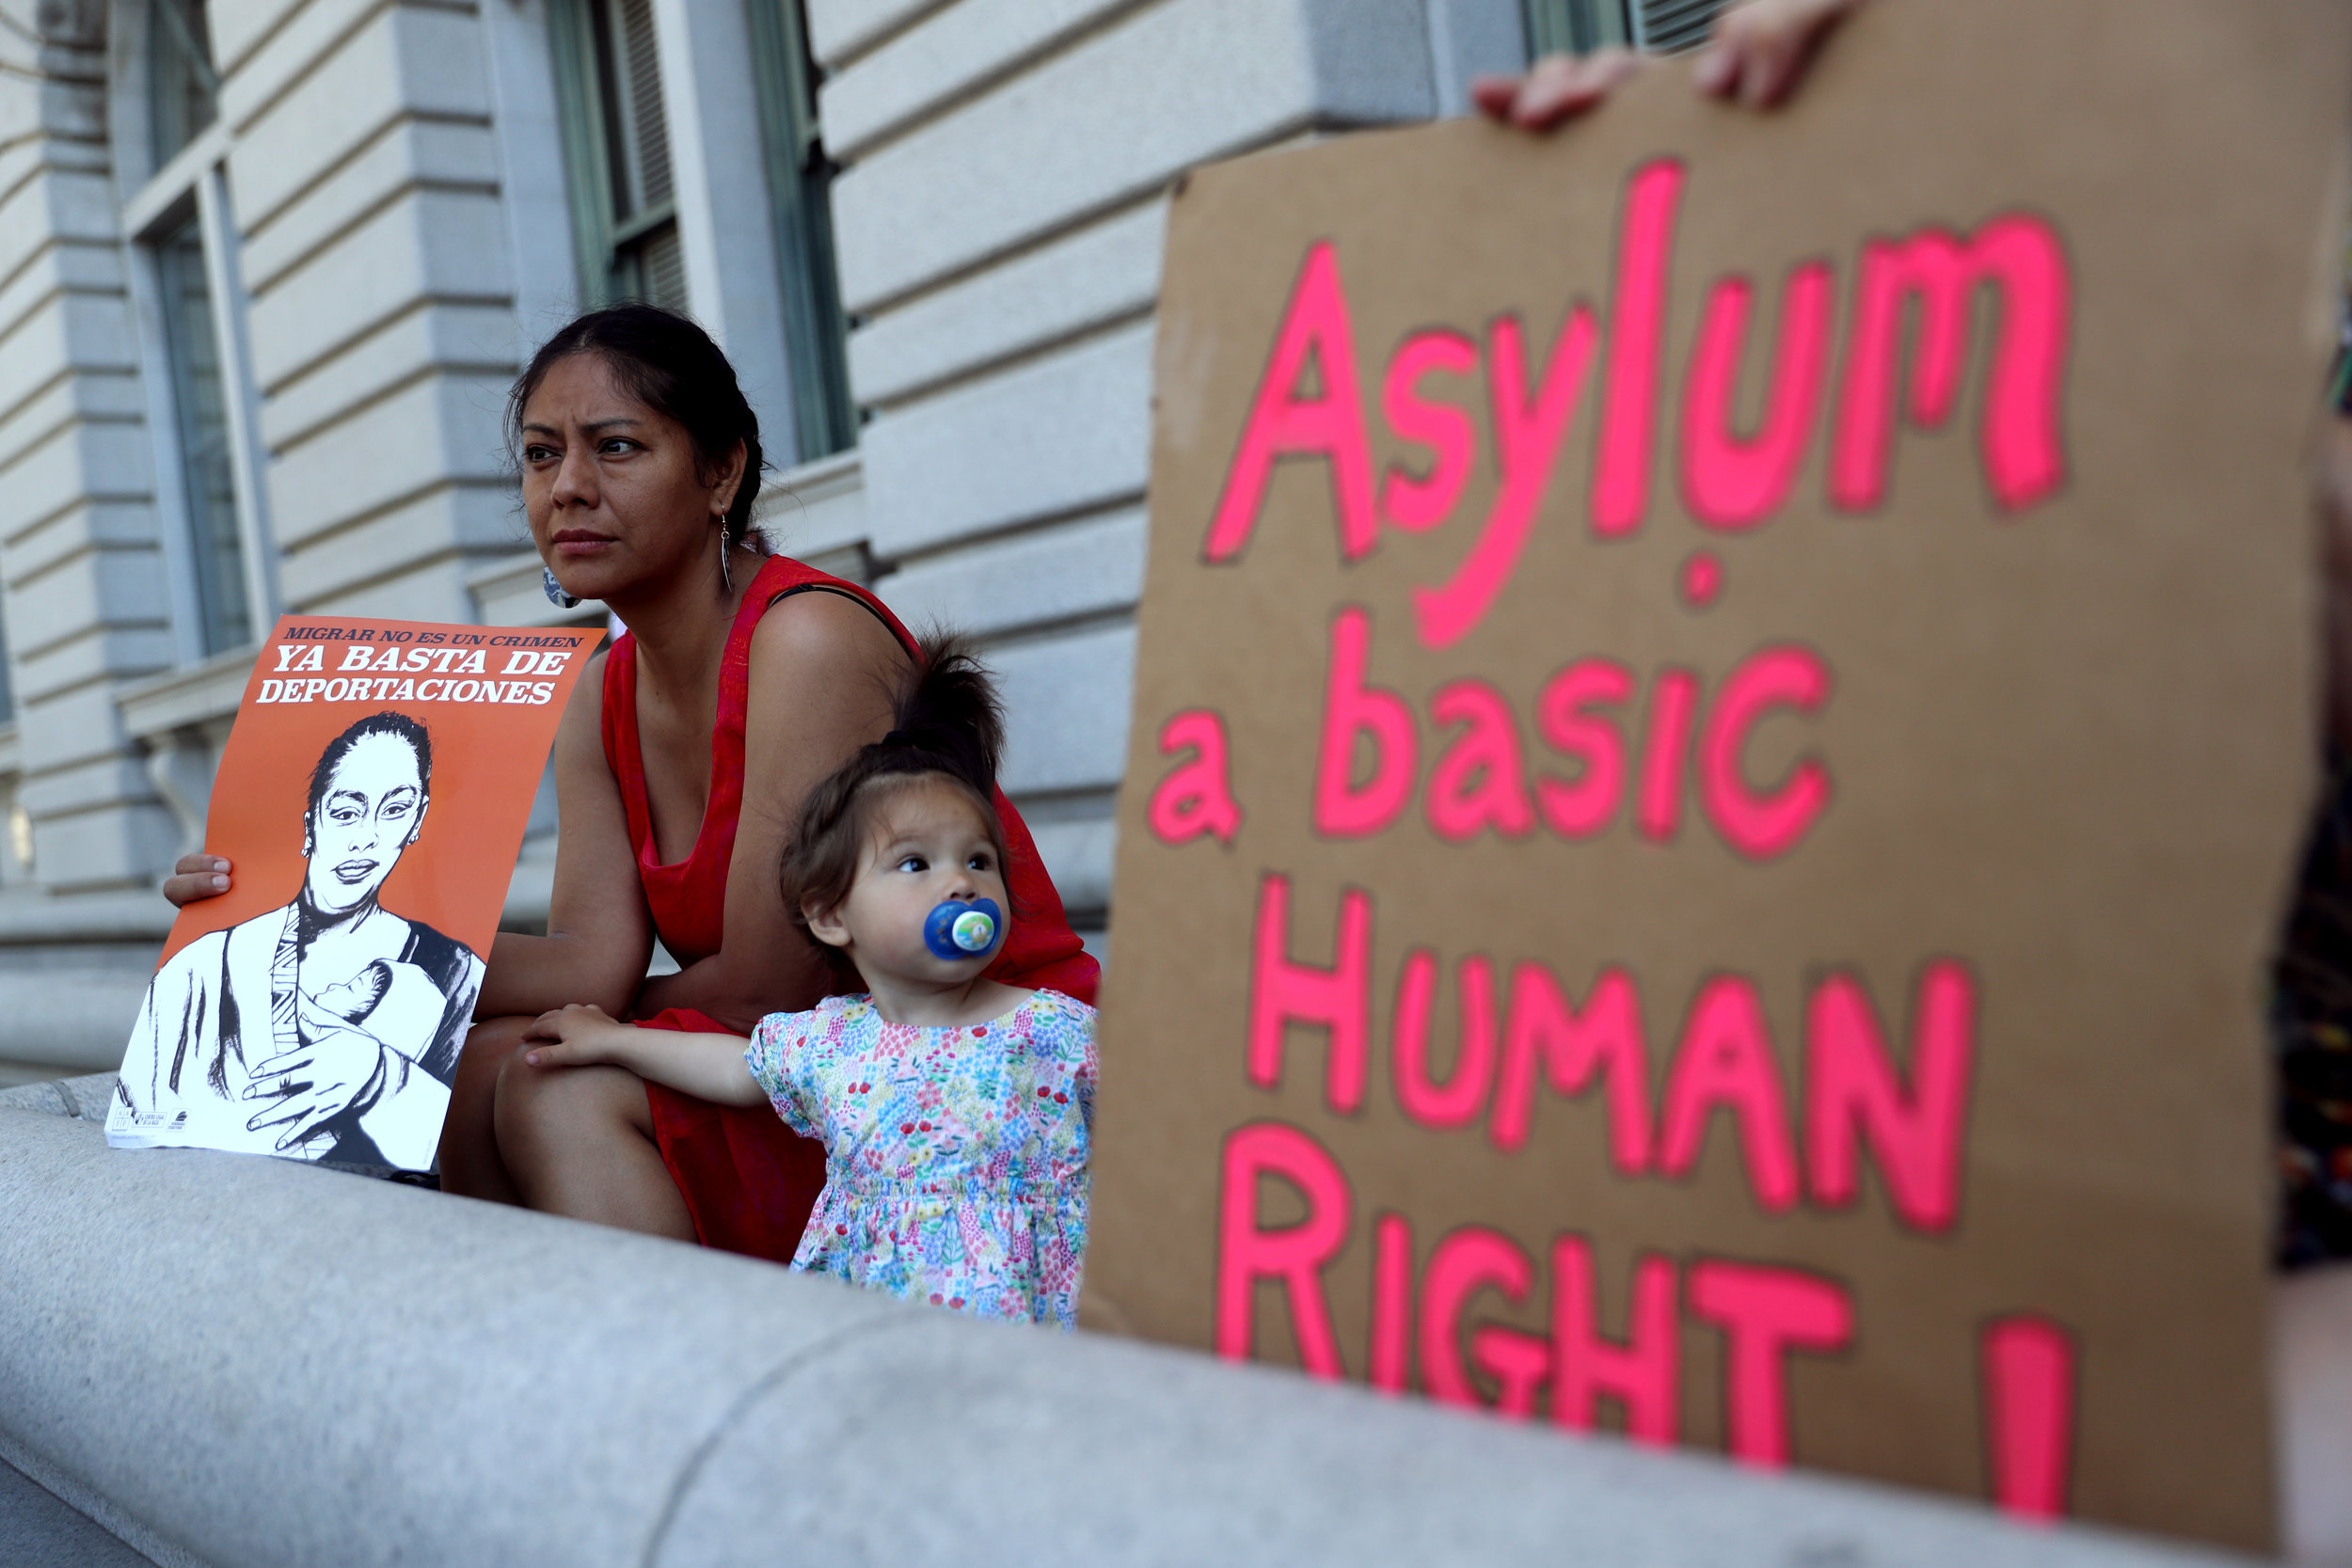 A protester holds a sign during a demonstration outside of the James R. Browning U.S. Courthouse in support of restoring protections for asylum seekers. Photo Credit: Justin Sullivan/Getty Images.